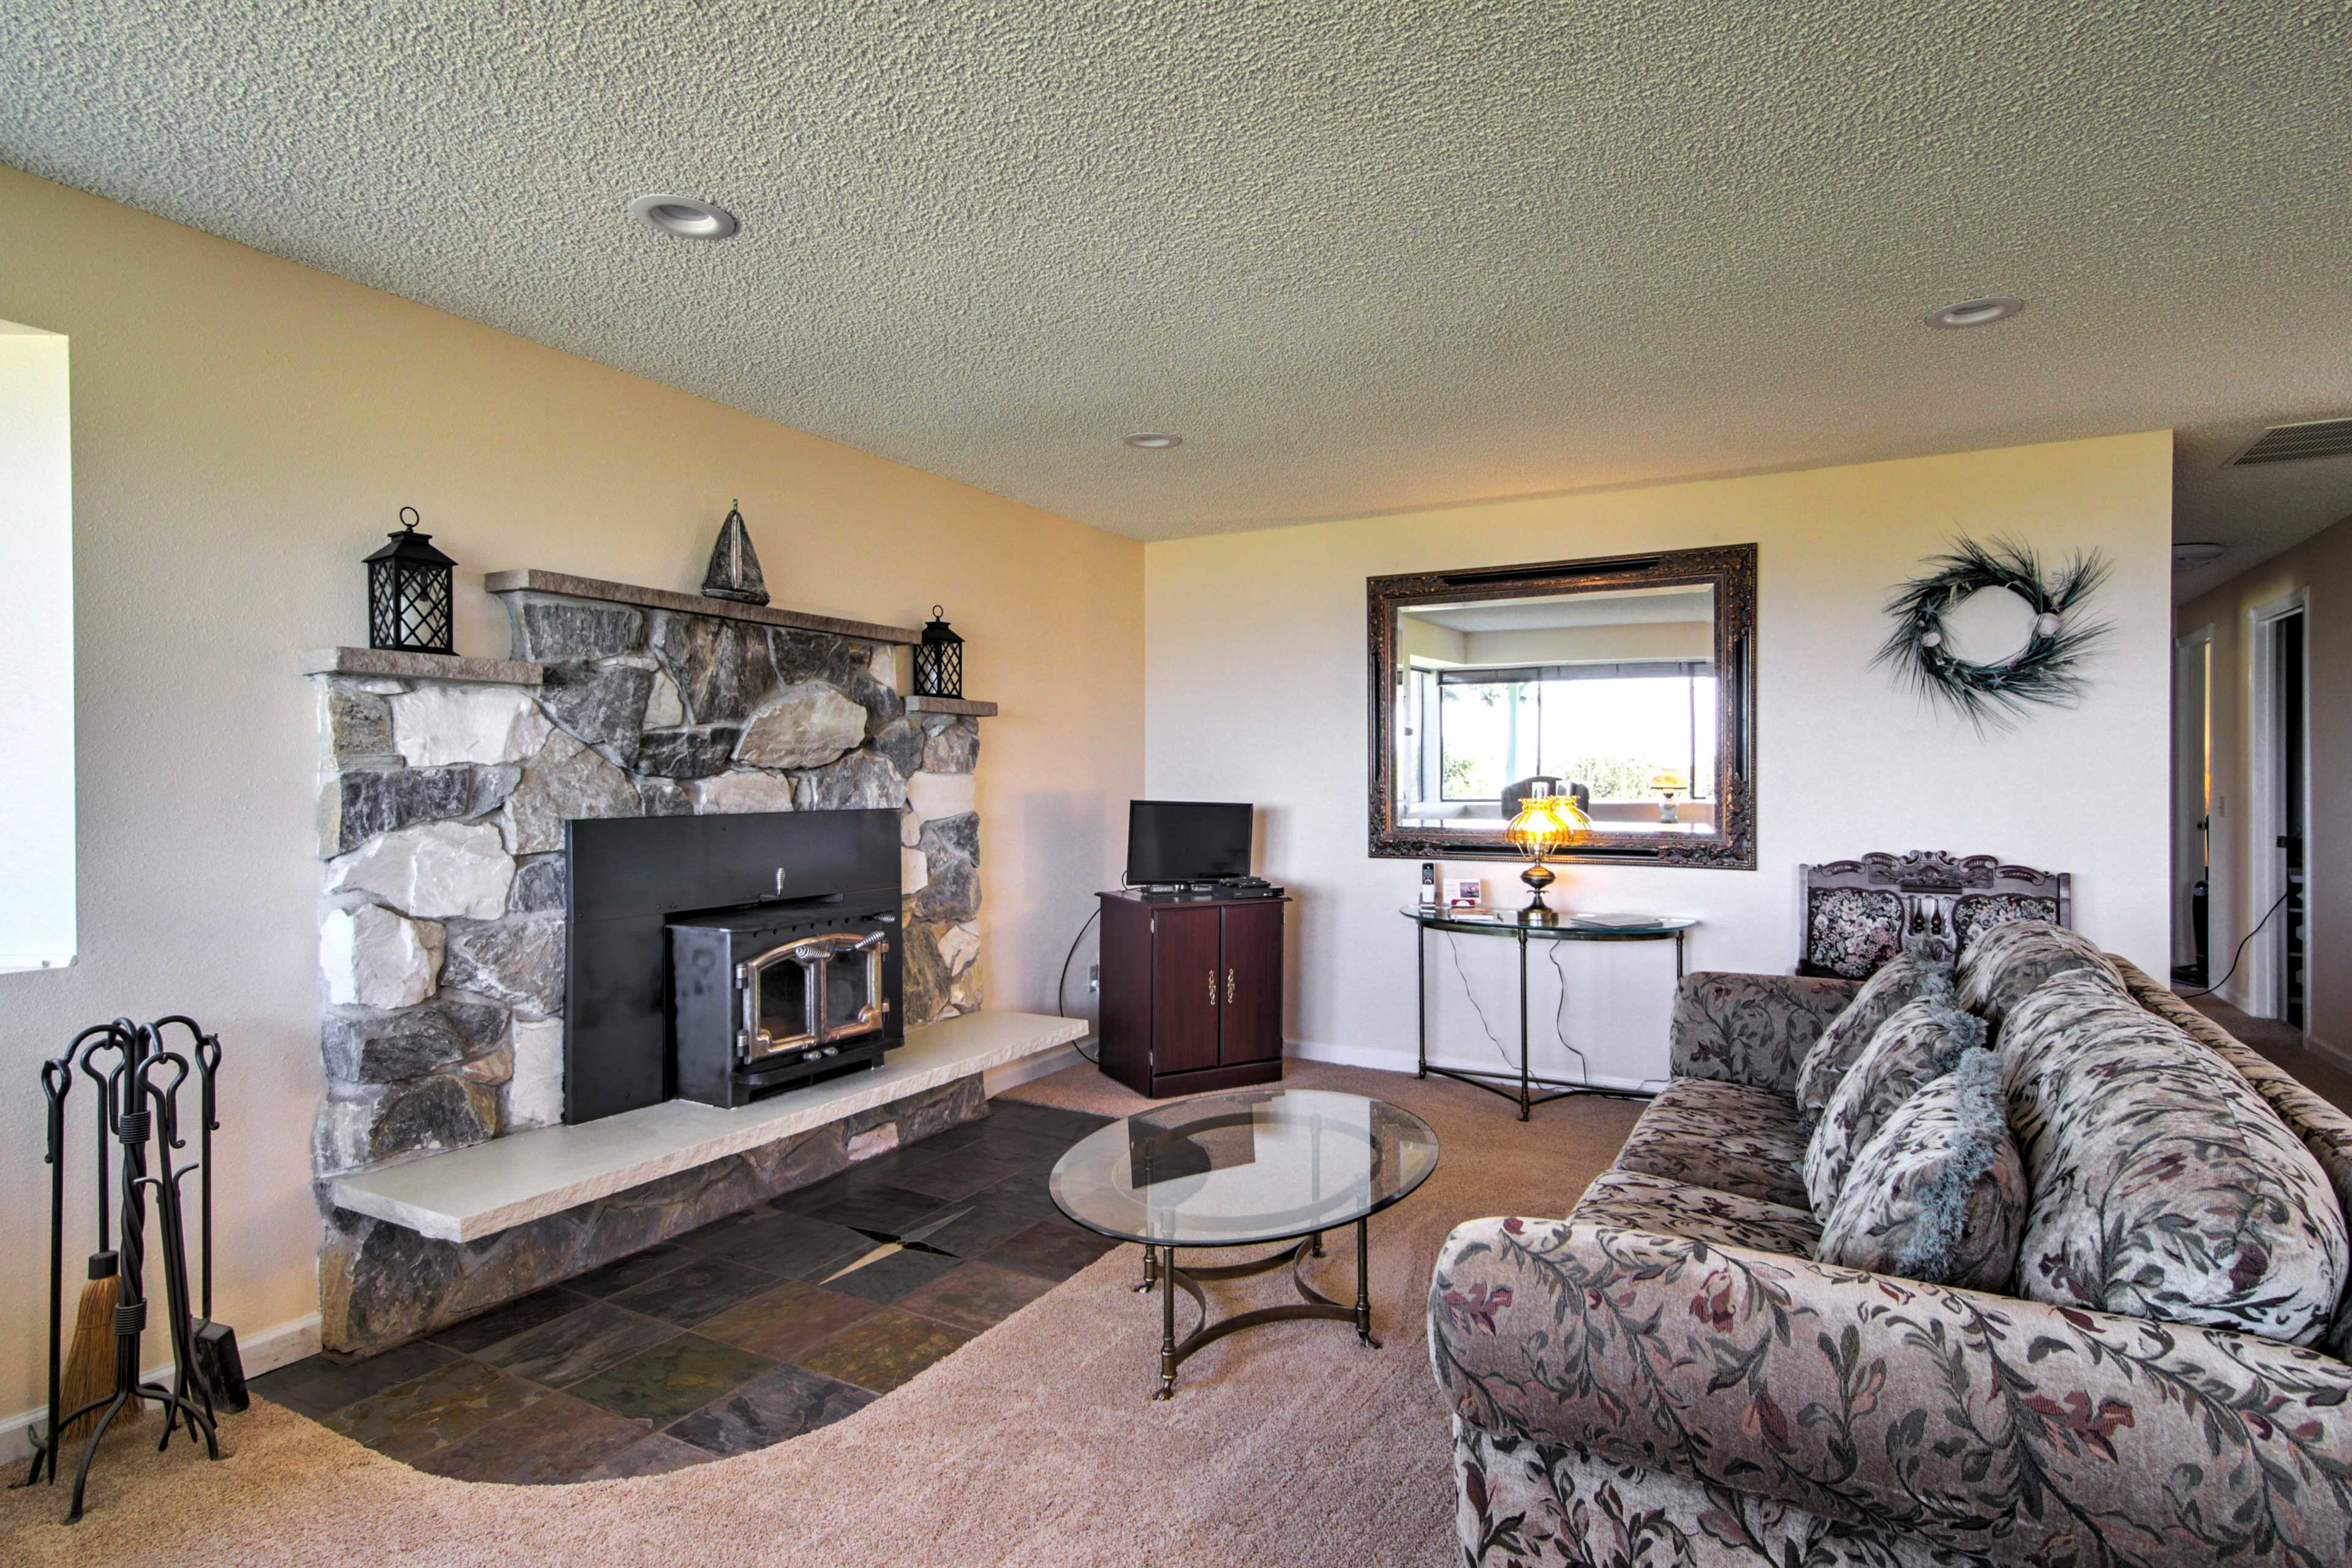 Unwind on the sofa while keeping warm next to the wood-burning stove.